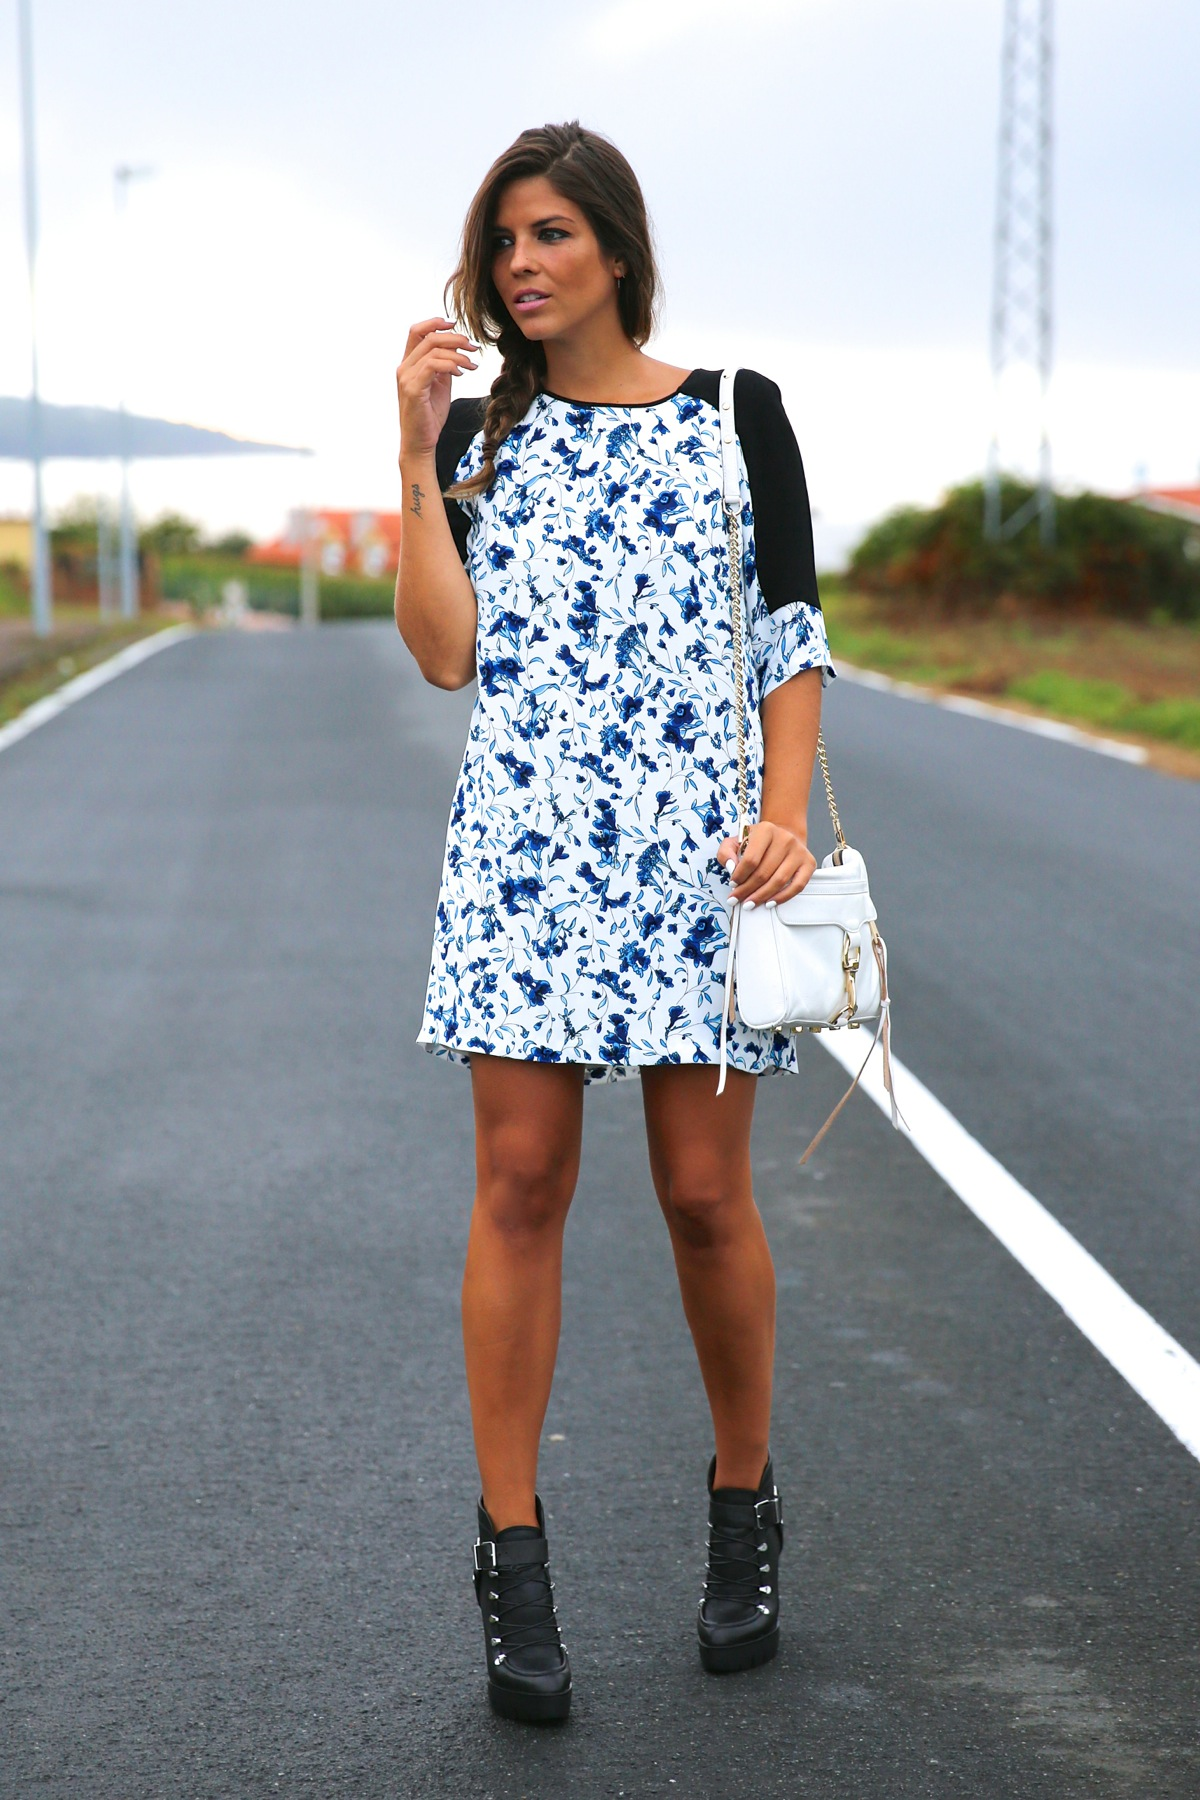 trendy_taste-look-outfit-street_style-ootd-blog-blogger-fashion_spain-moda_españa-combat_boots-botas_rock-parka-kimono-bolso_blanco-white_bag-galicia-vestido_flores-flower_print-dress-10